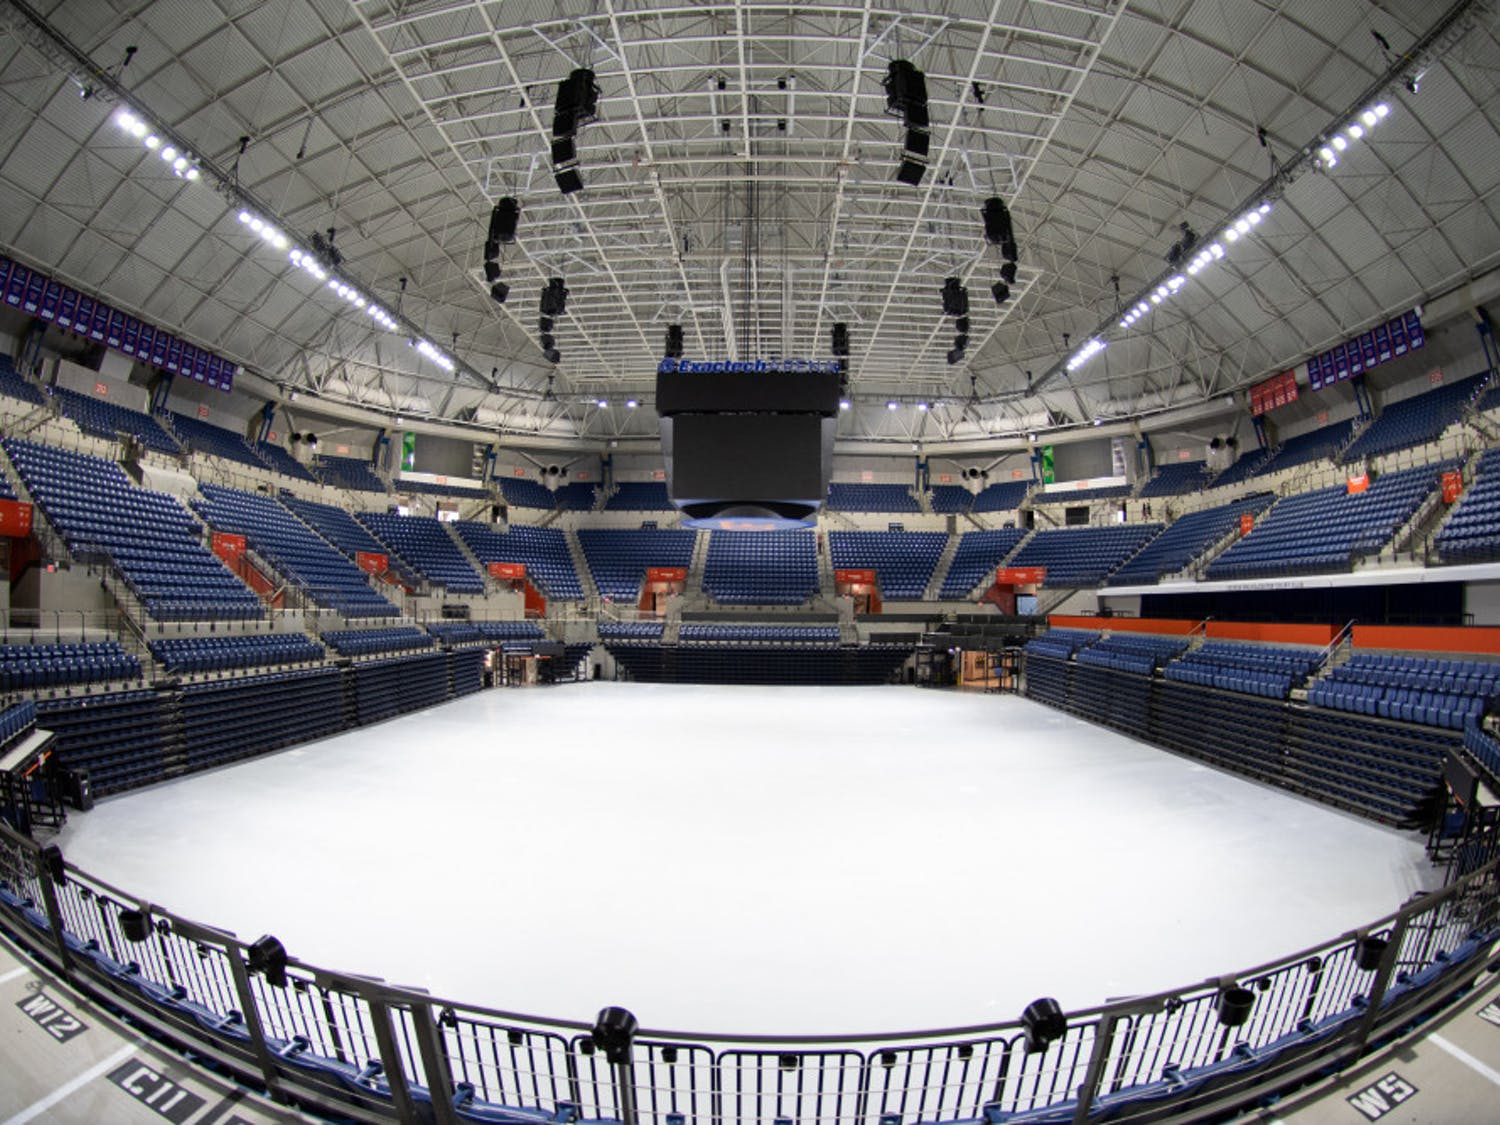 The Stephen C. O'Connell Center originally opened in 1980 and is named after the sixth president of UF. The building underwent a $64.5 million renovation in 2016. In the renovation, the entire interior area was demolished and rebuilt with the addition of a large hanging scoreboard and luxury suites. Gymnastics and swimming areas and locker rooms were improved, and a new entrance was built facing the stadium.